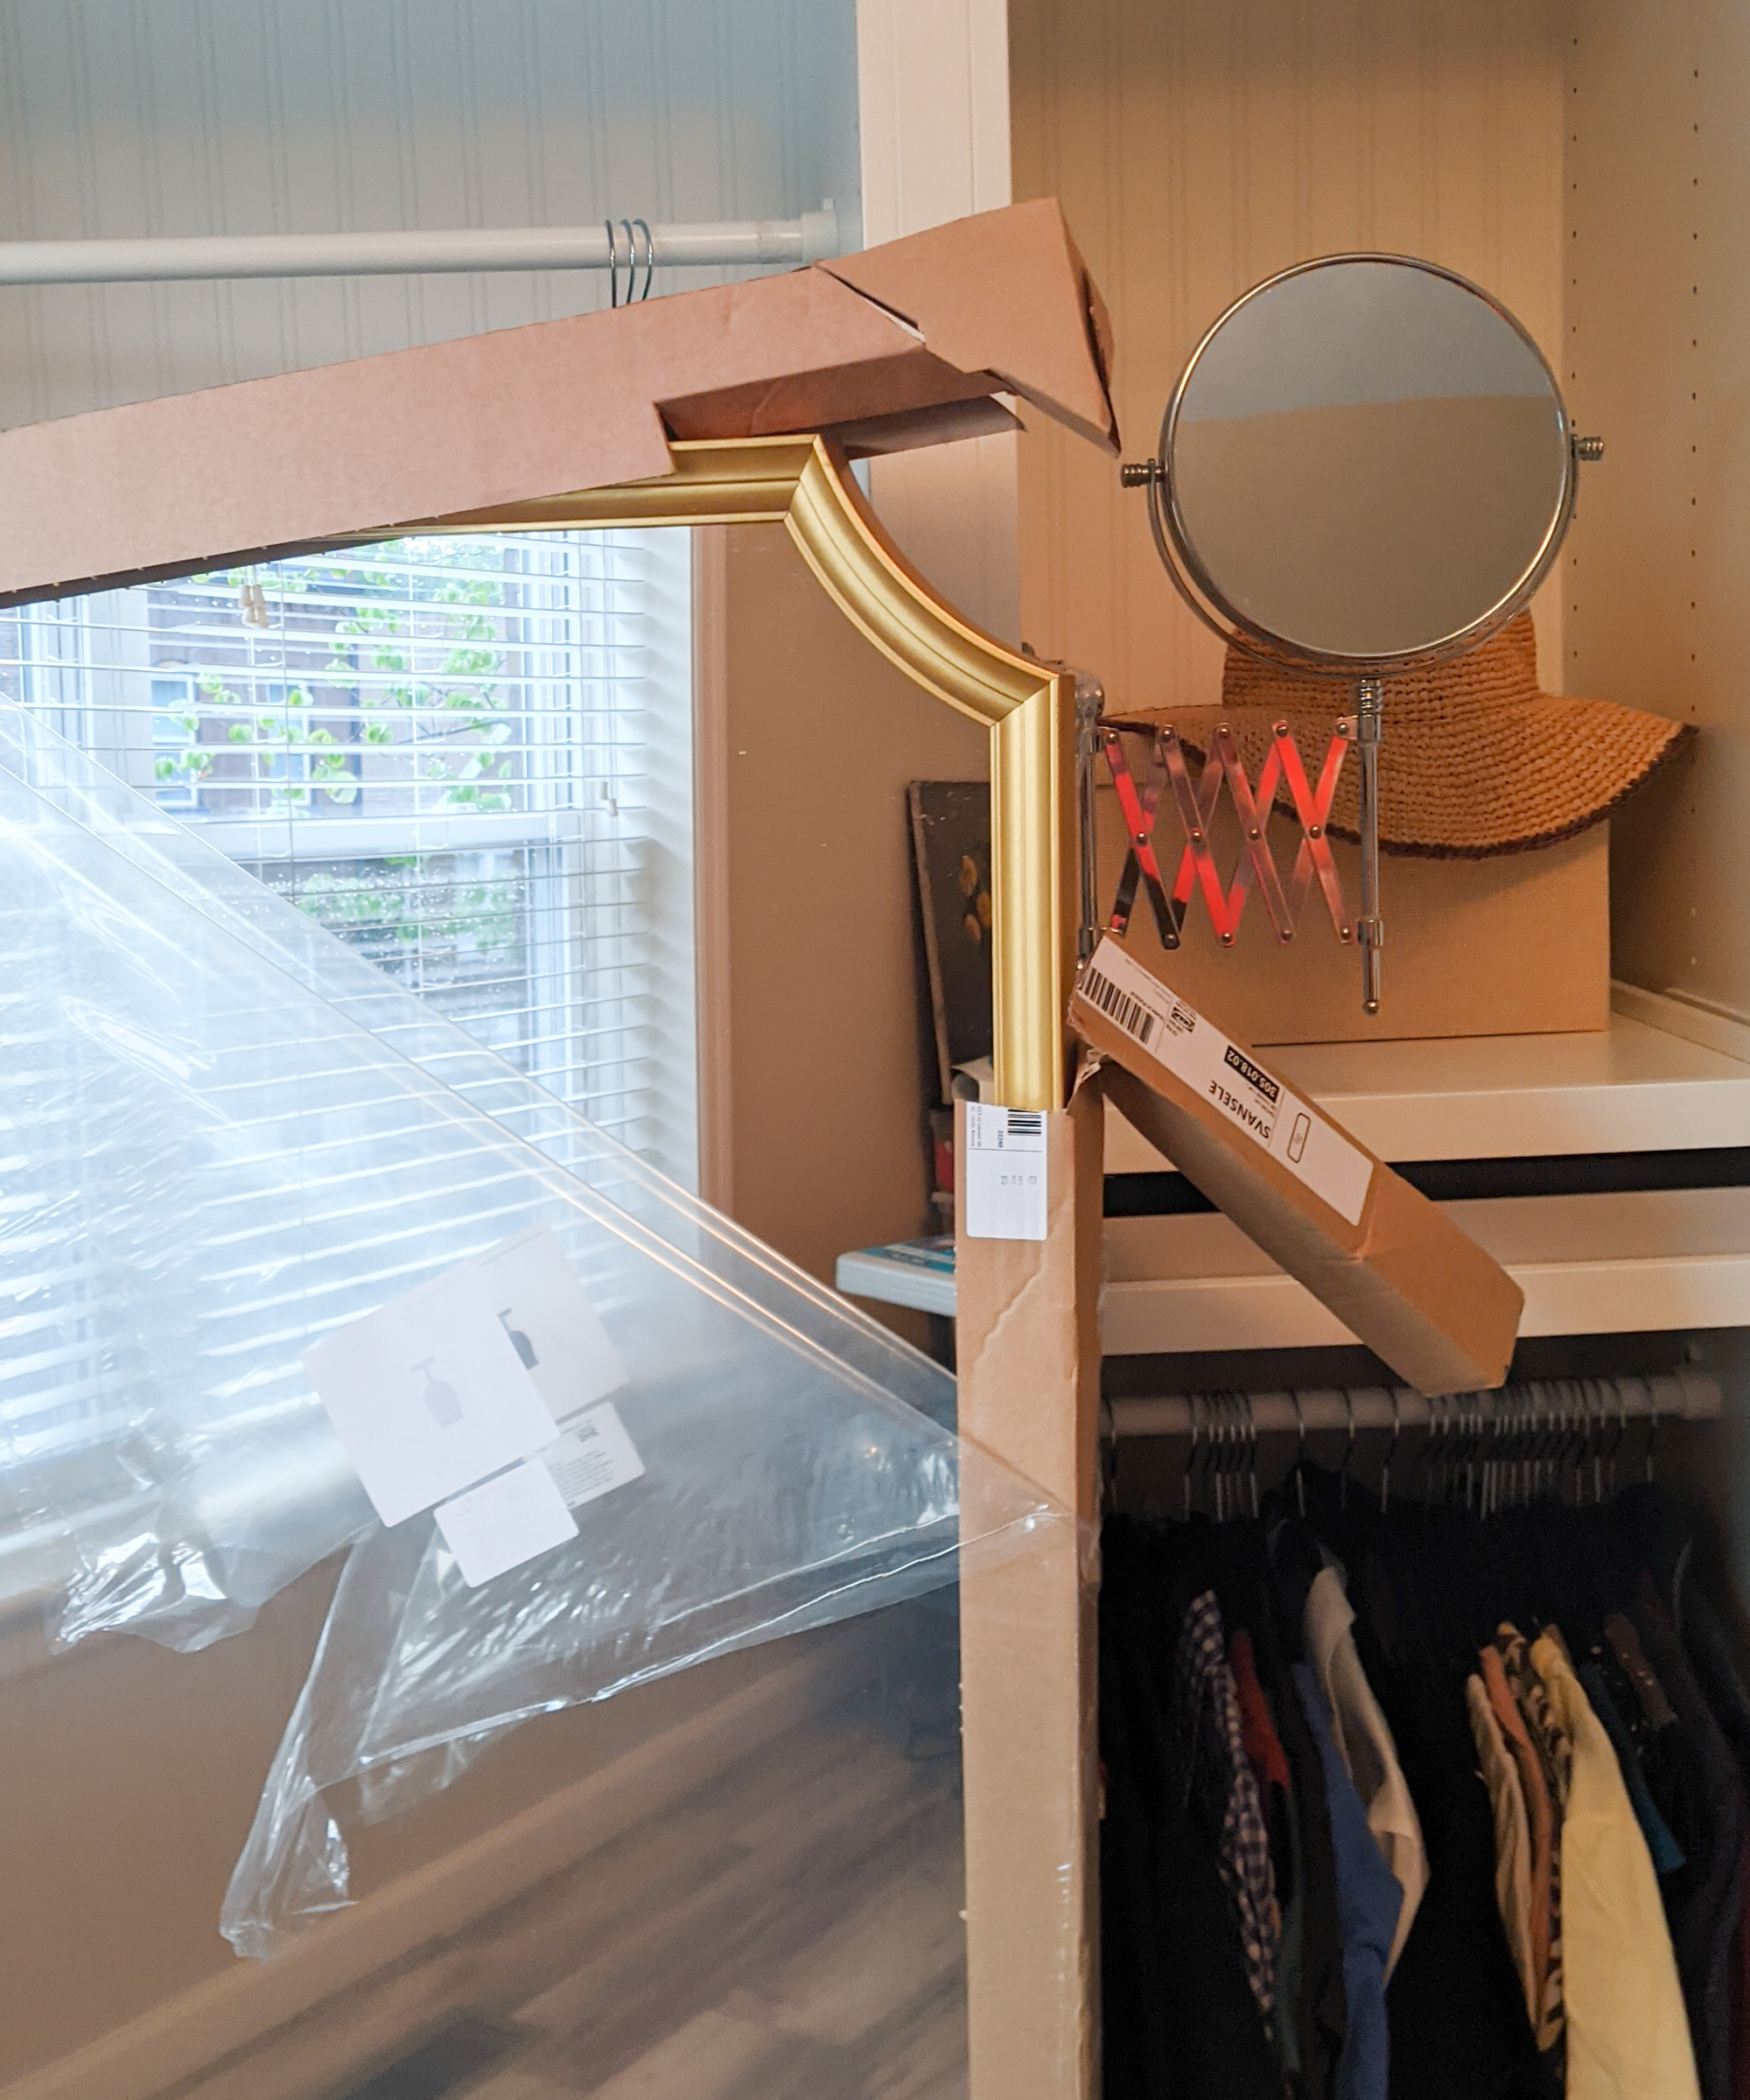 A partially unboxed ikea svansele mirror, with the gold frame peeking out of half removed cardboard packing.